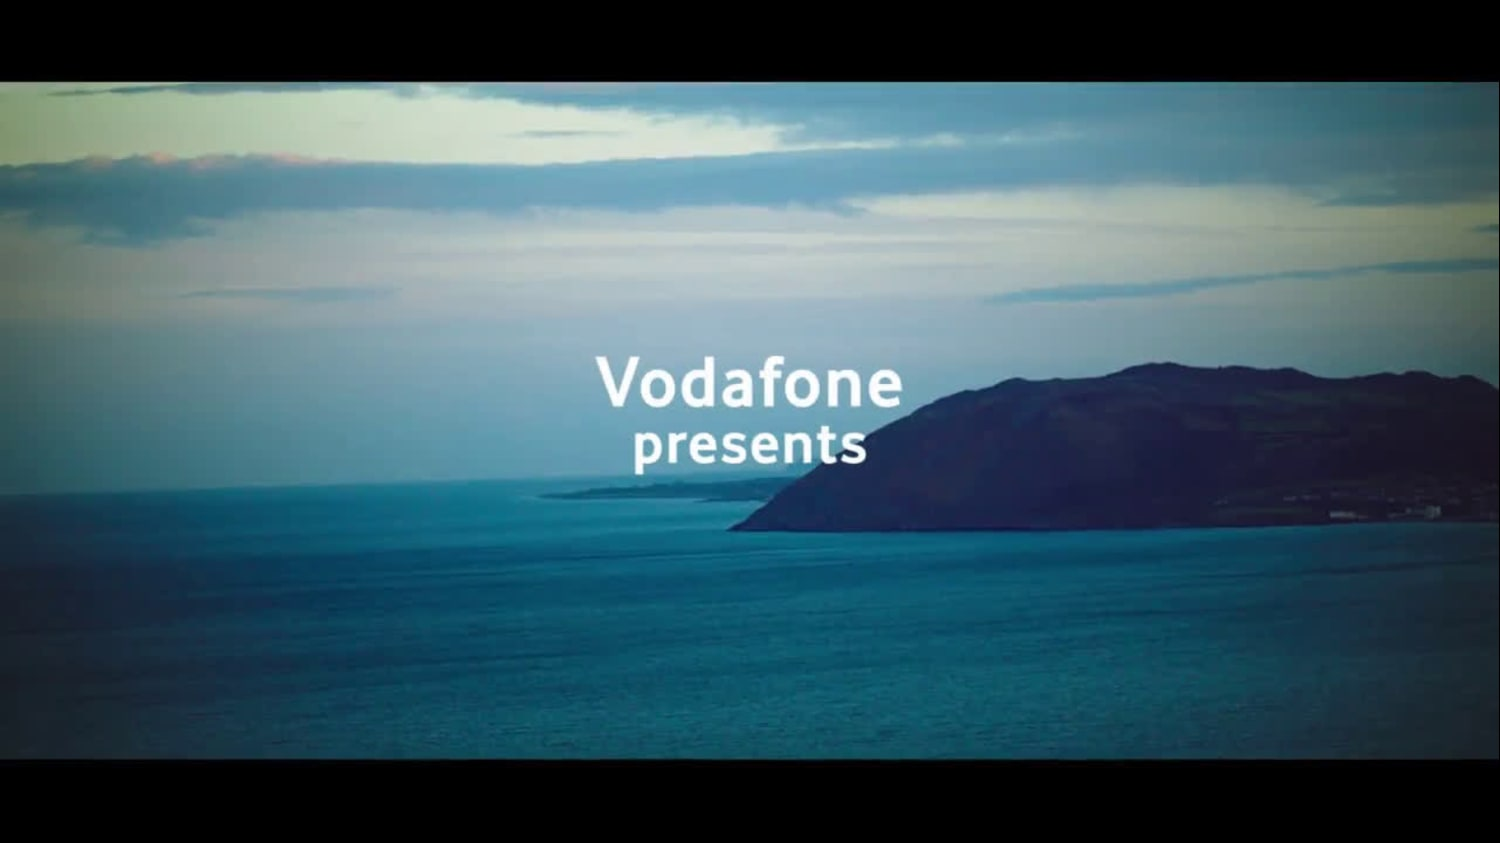 Team Of Us Vodafone Who we are is how we play